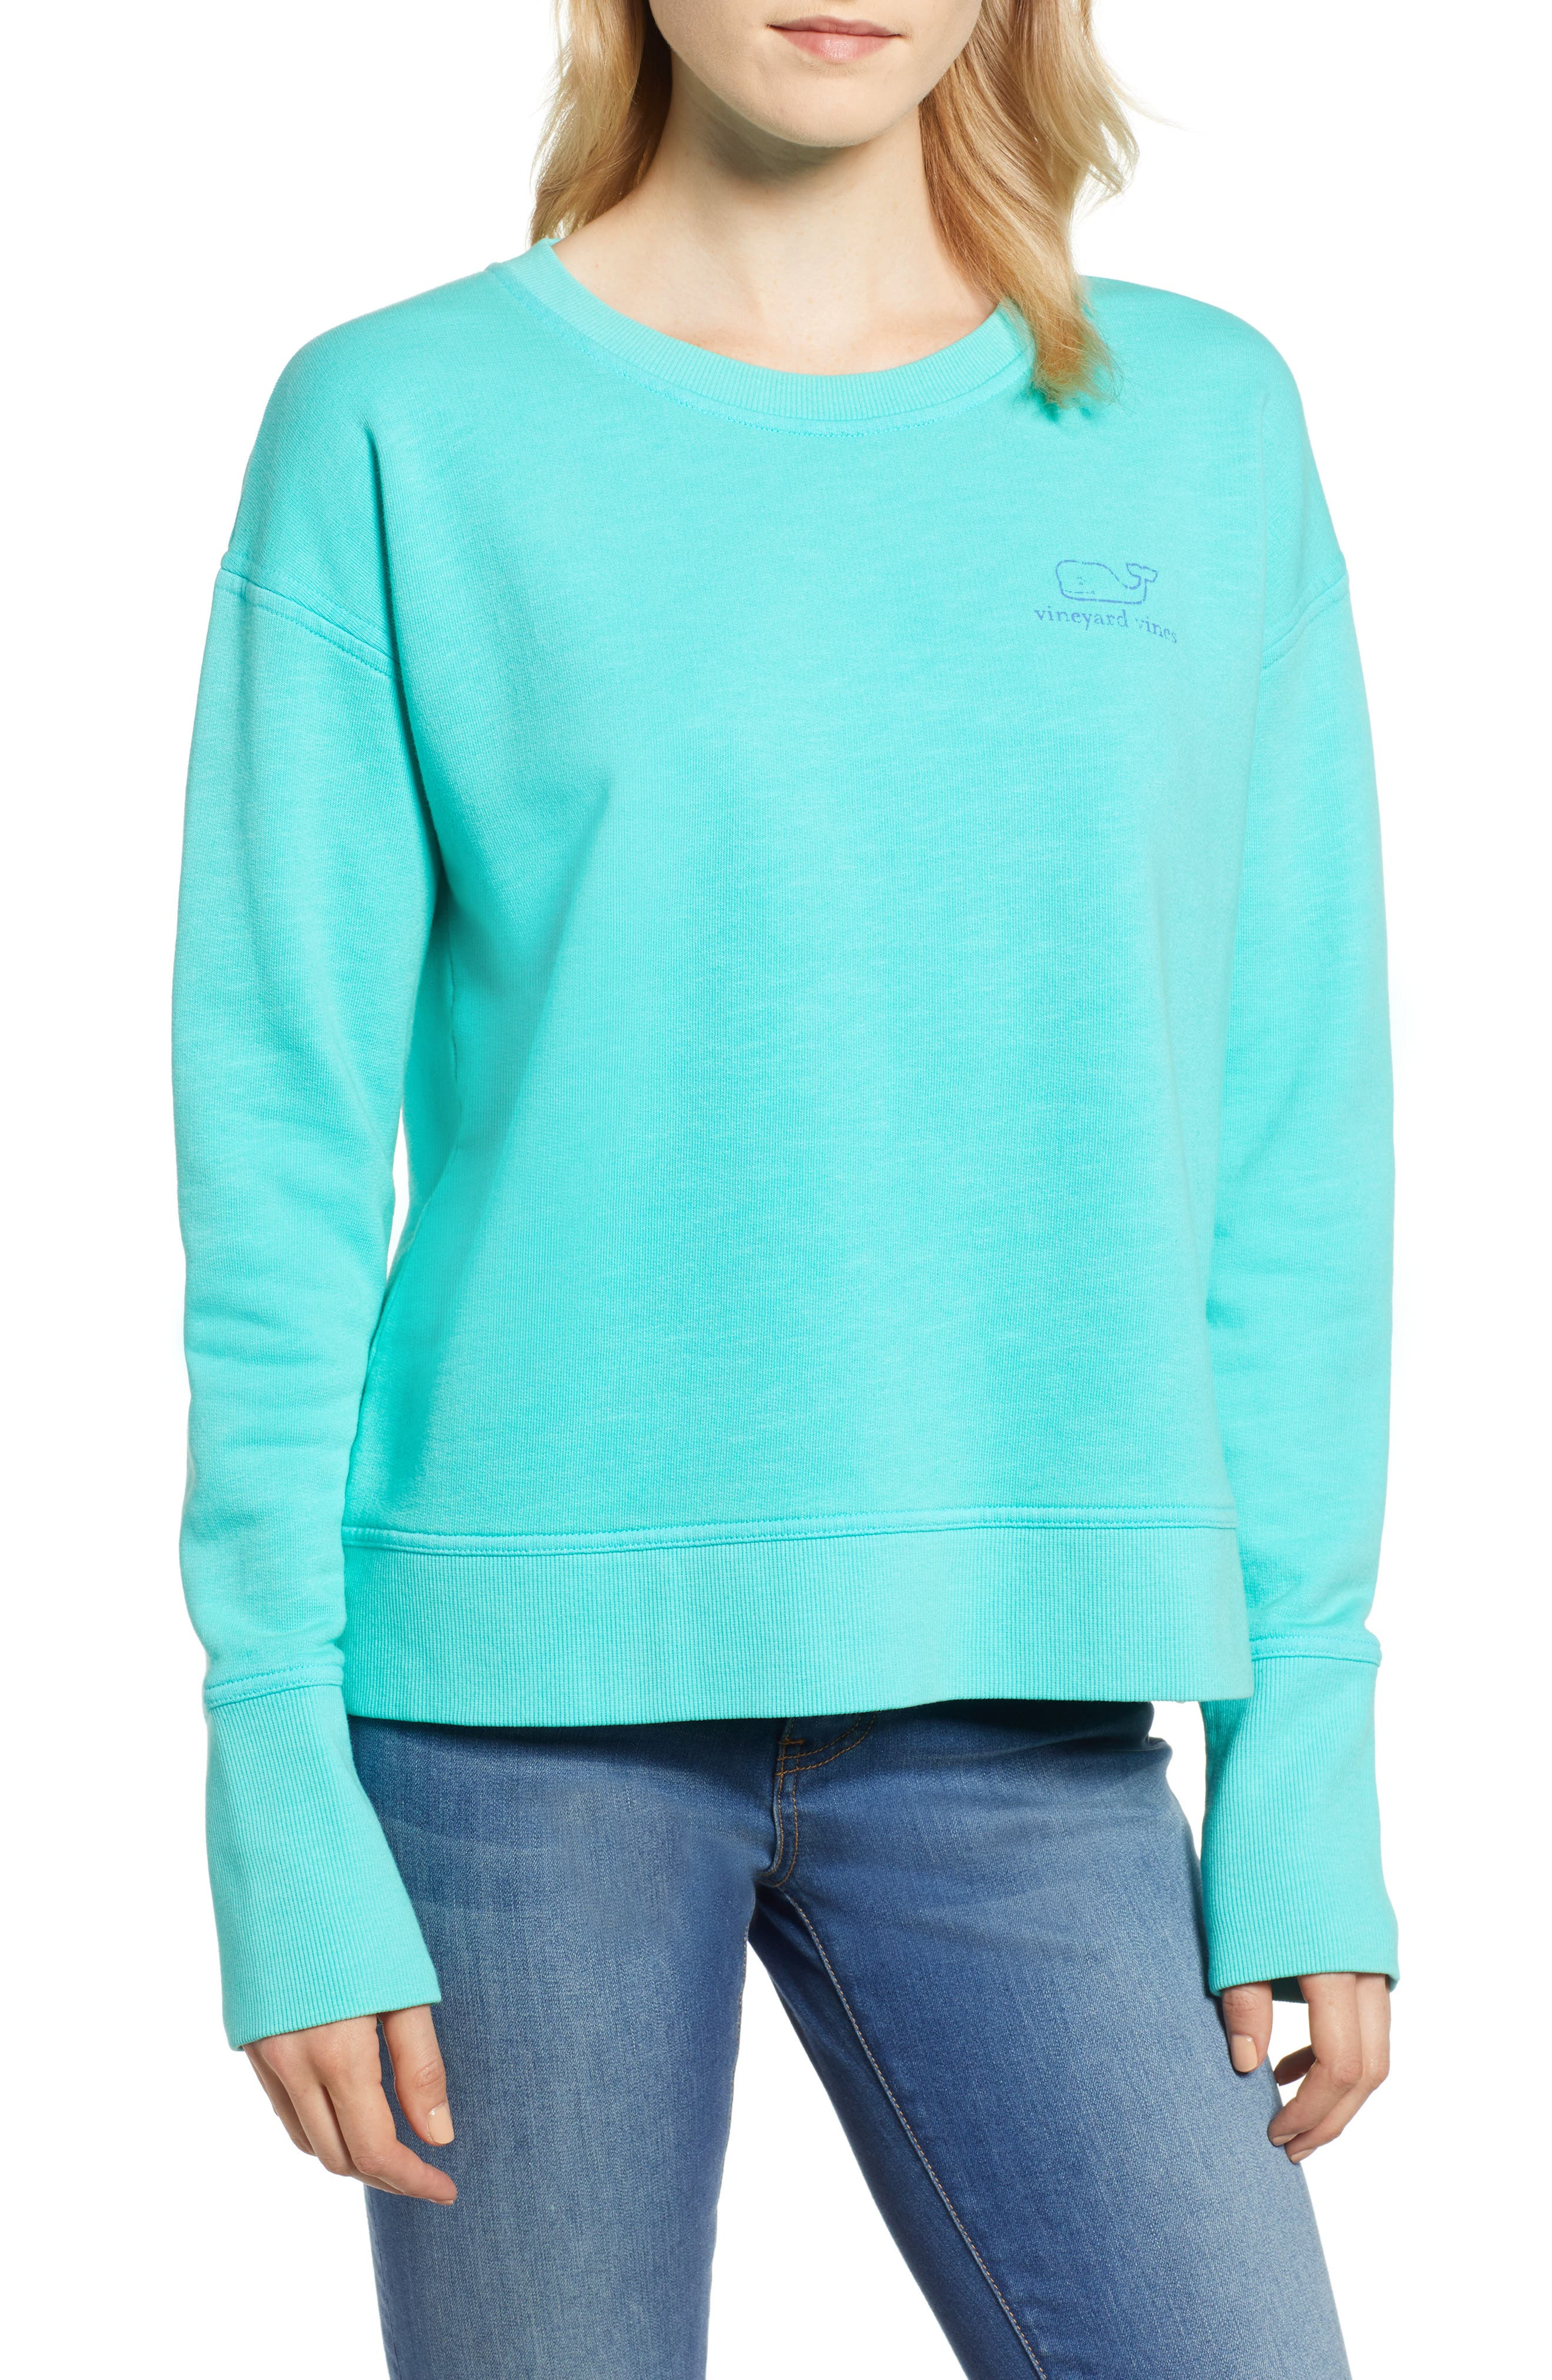 GARMENT DYED VINTAGE WHALE LONG SLEEVE COTTON TEE from Nordstrom